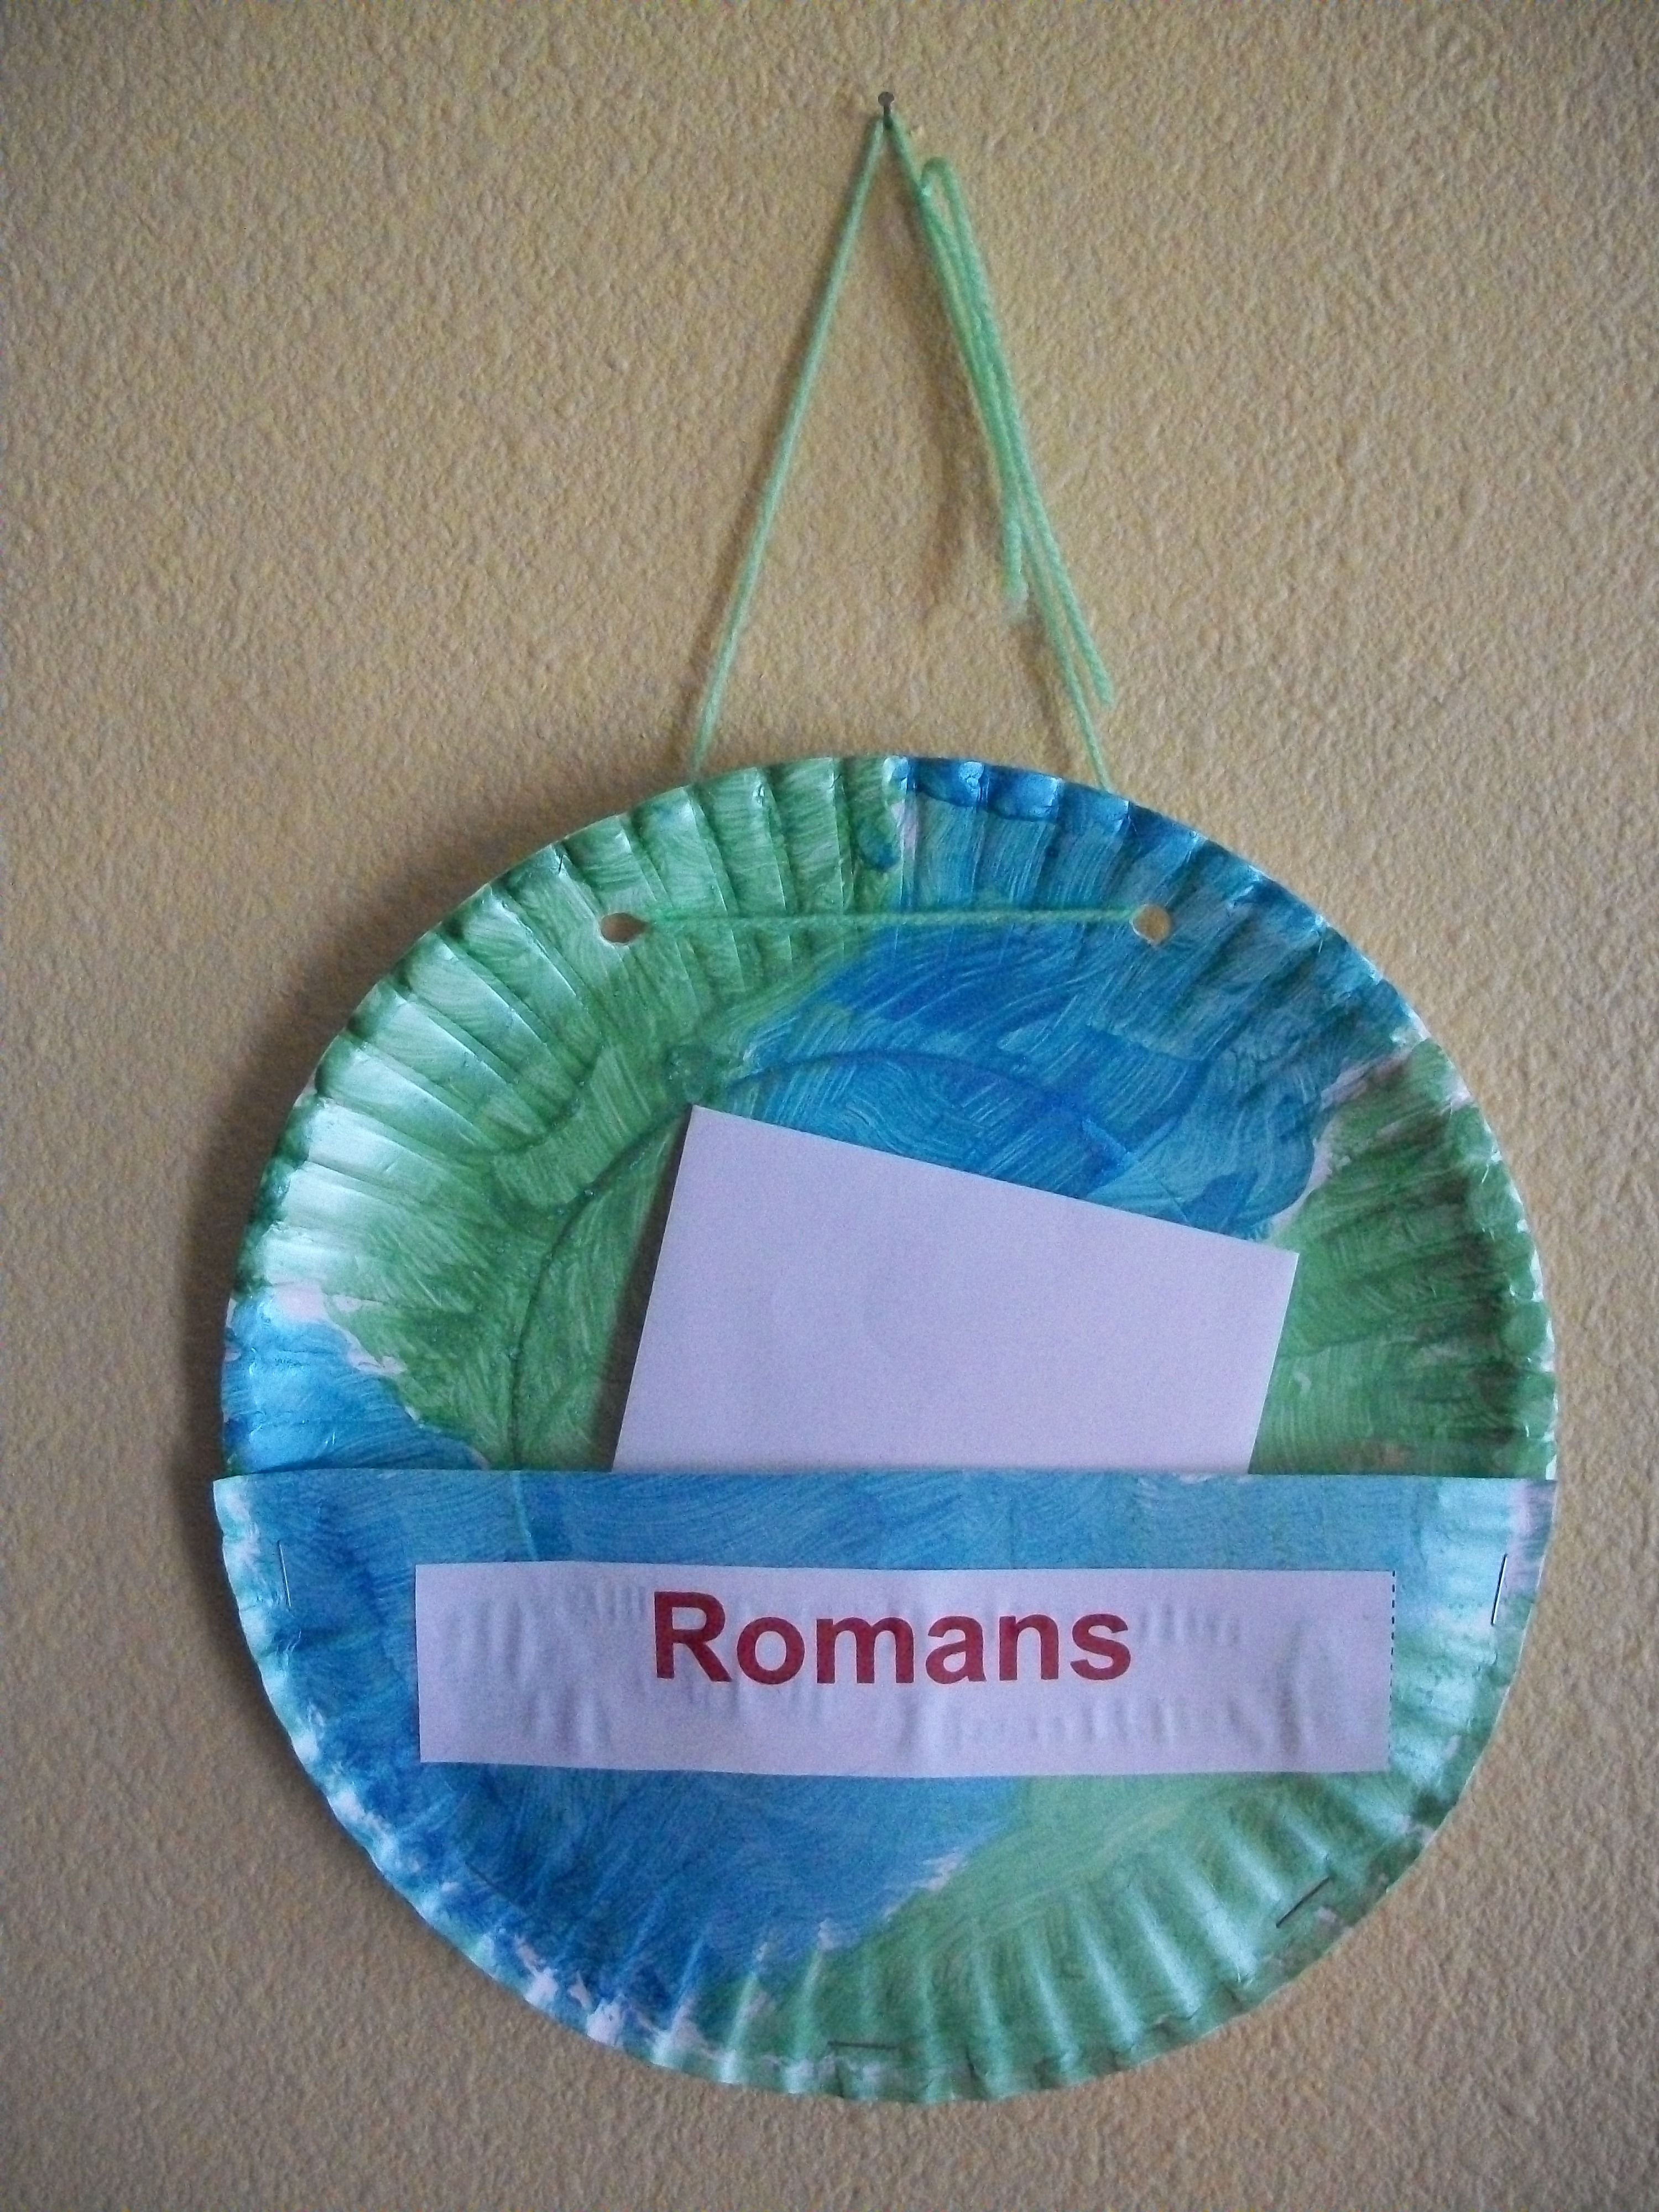 Create a paperplate 'mail pocket' for each of the churches